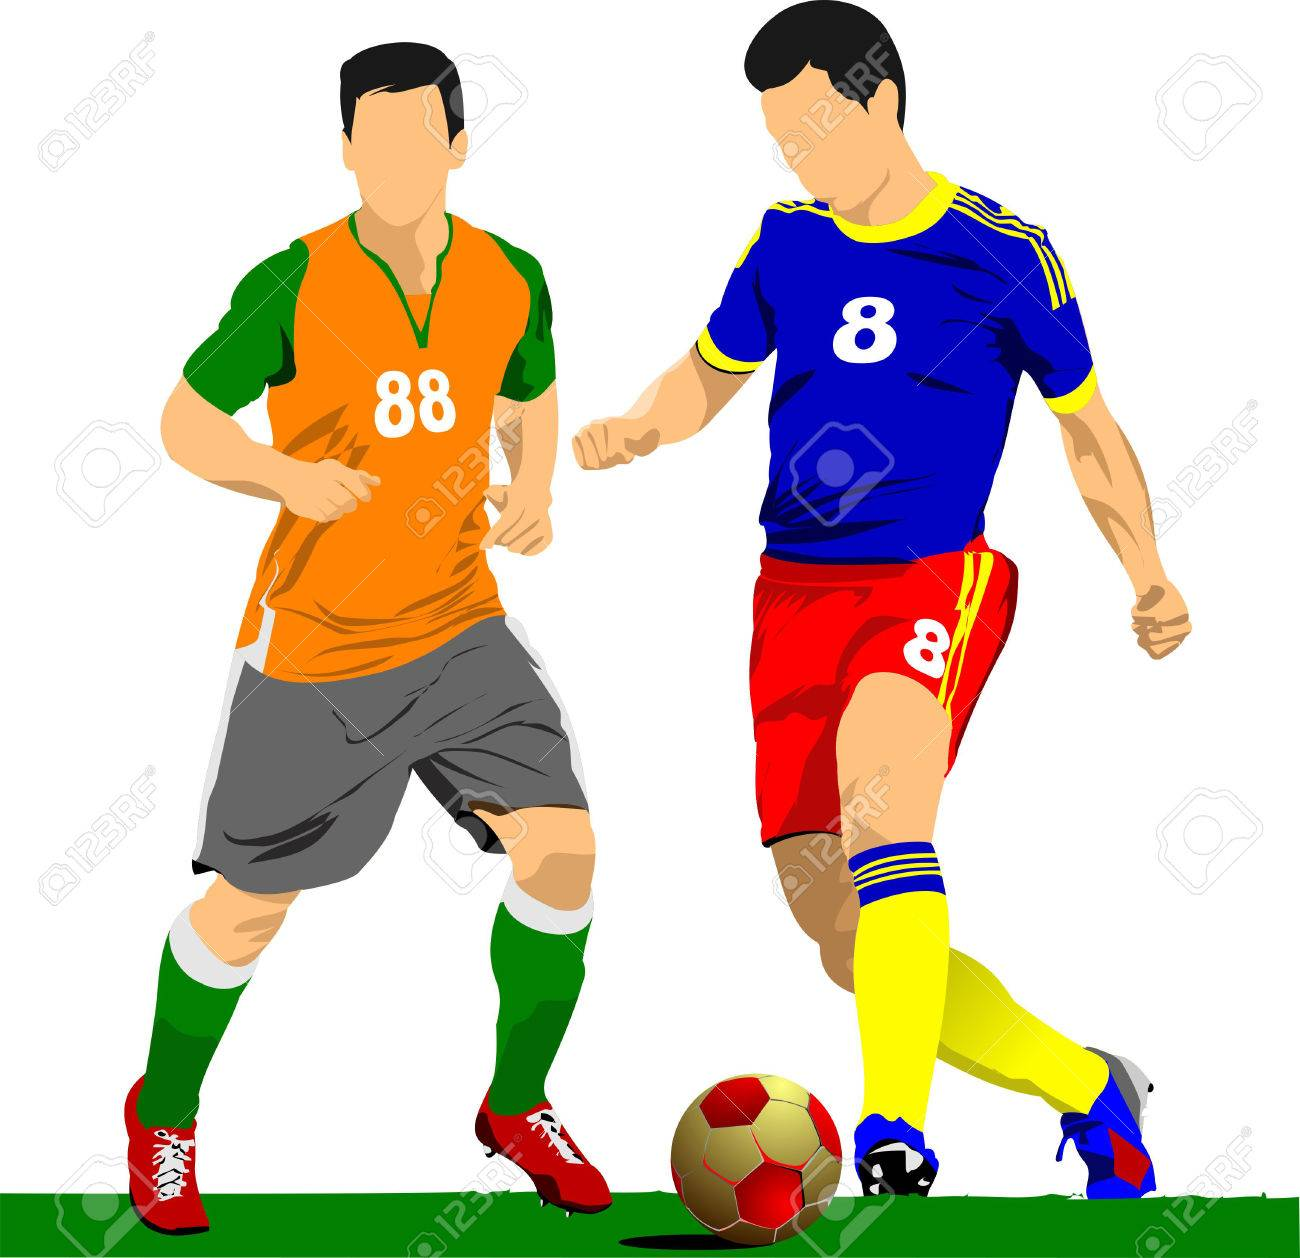 soccer player poster. football player. vector illustration royalty free  cliparts, vectors, and stock illustration. image 31242677.  123rf